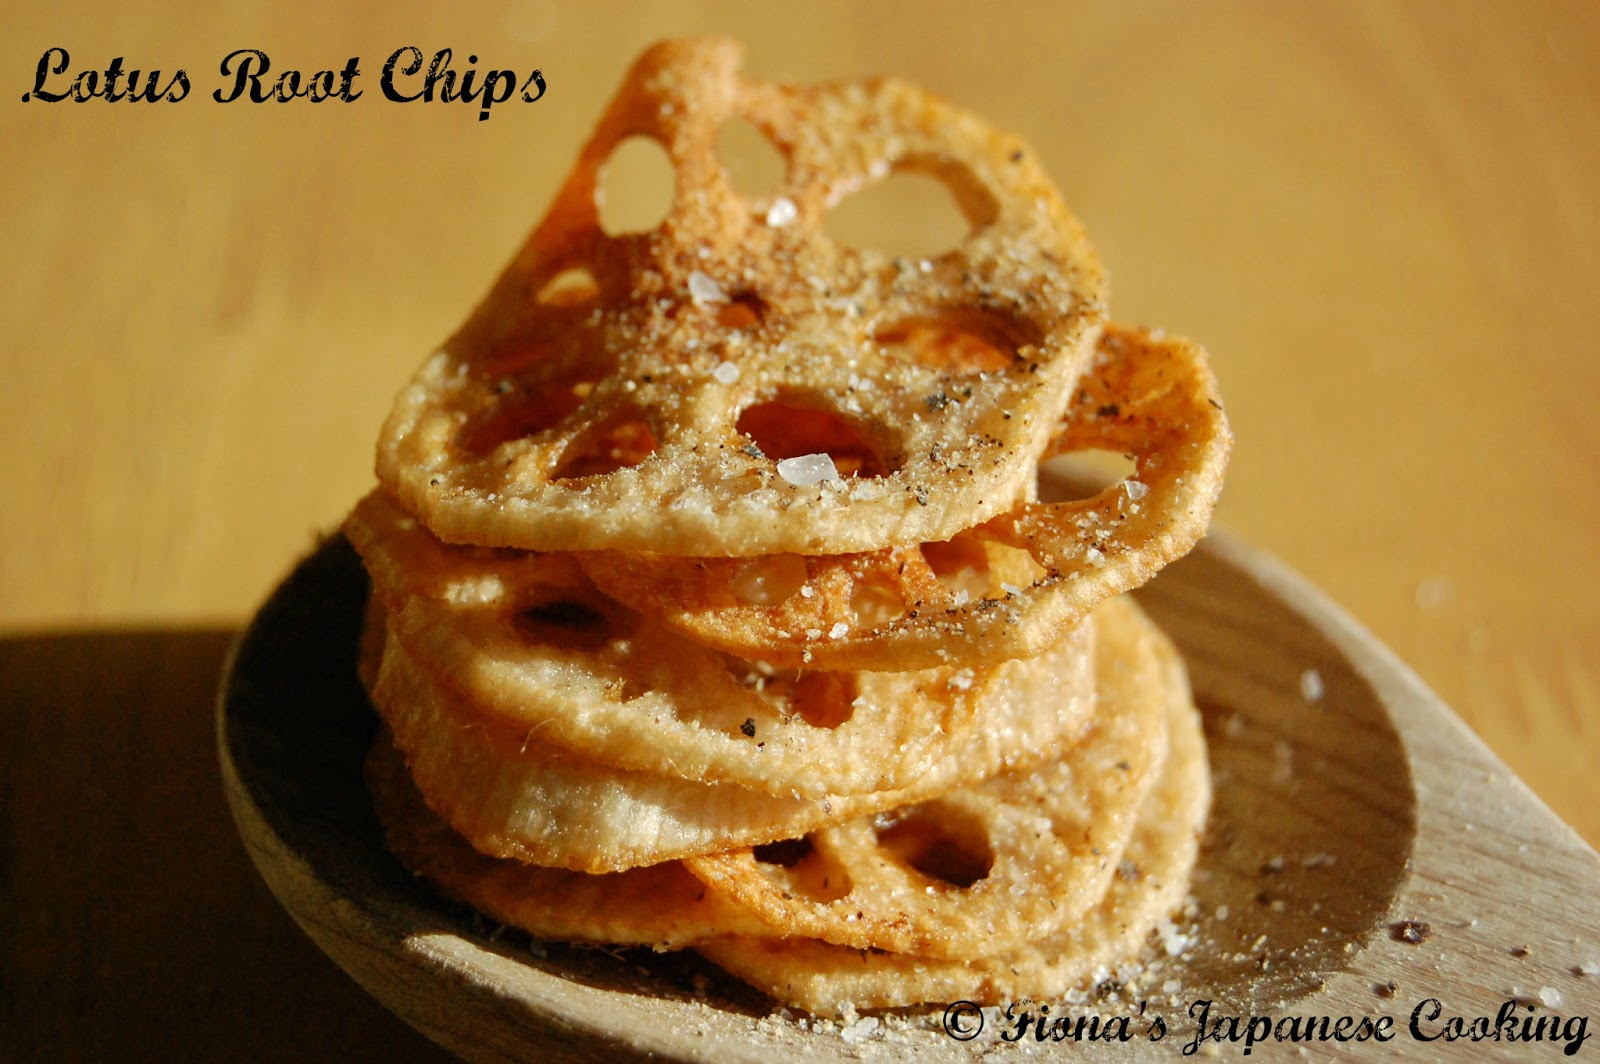 Fionas japanese cooking my japanese recipe twist lotus root chips fionas japanese cooking forumfinder Images